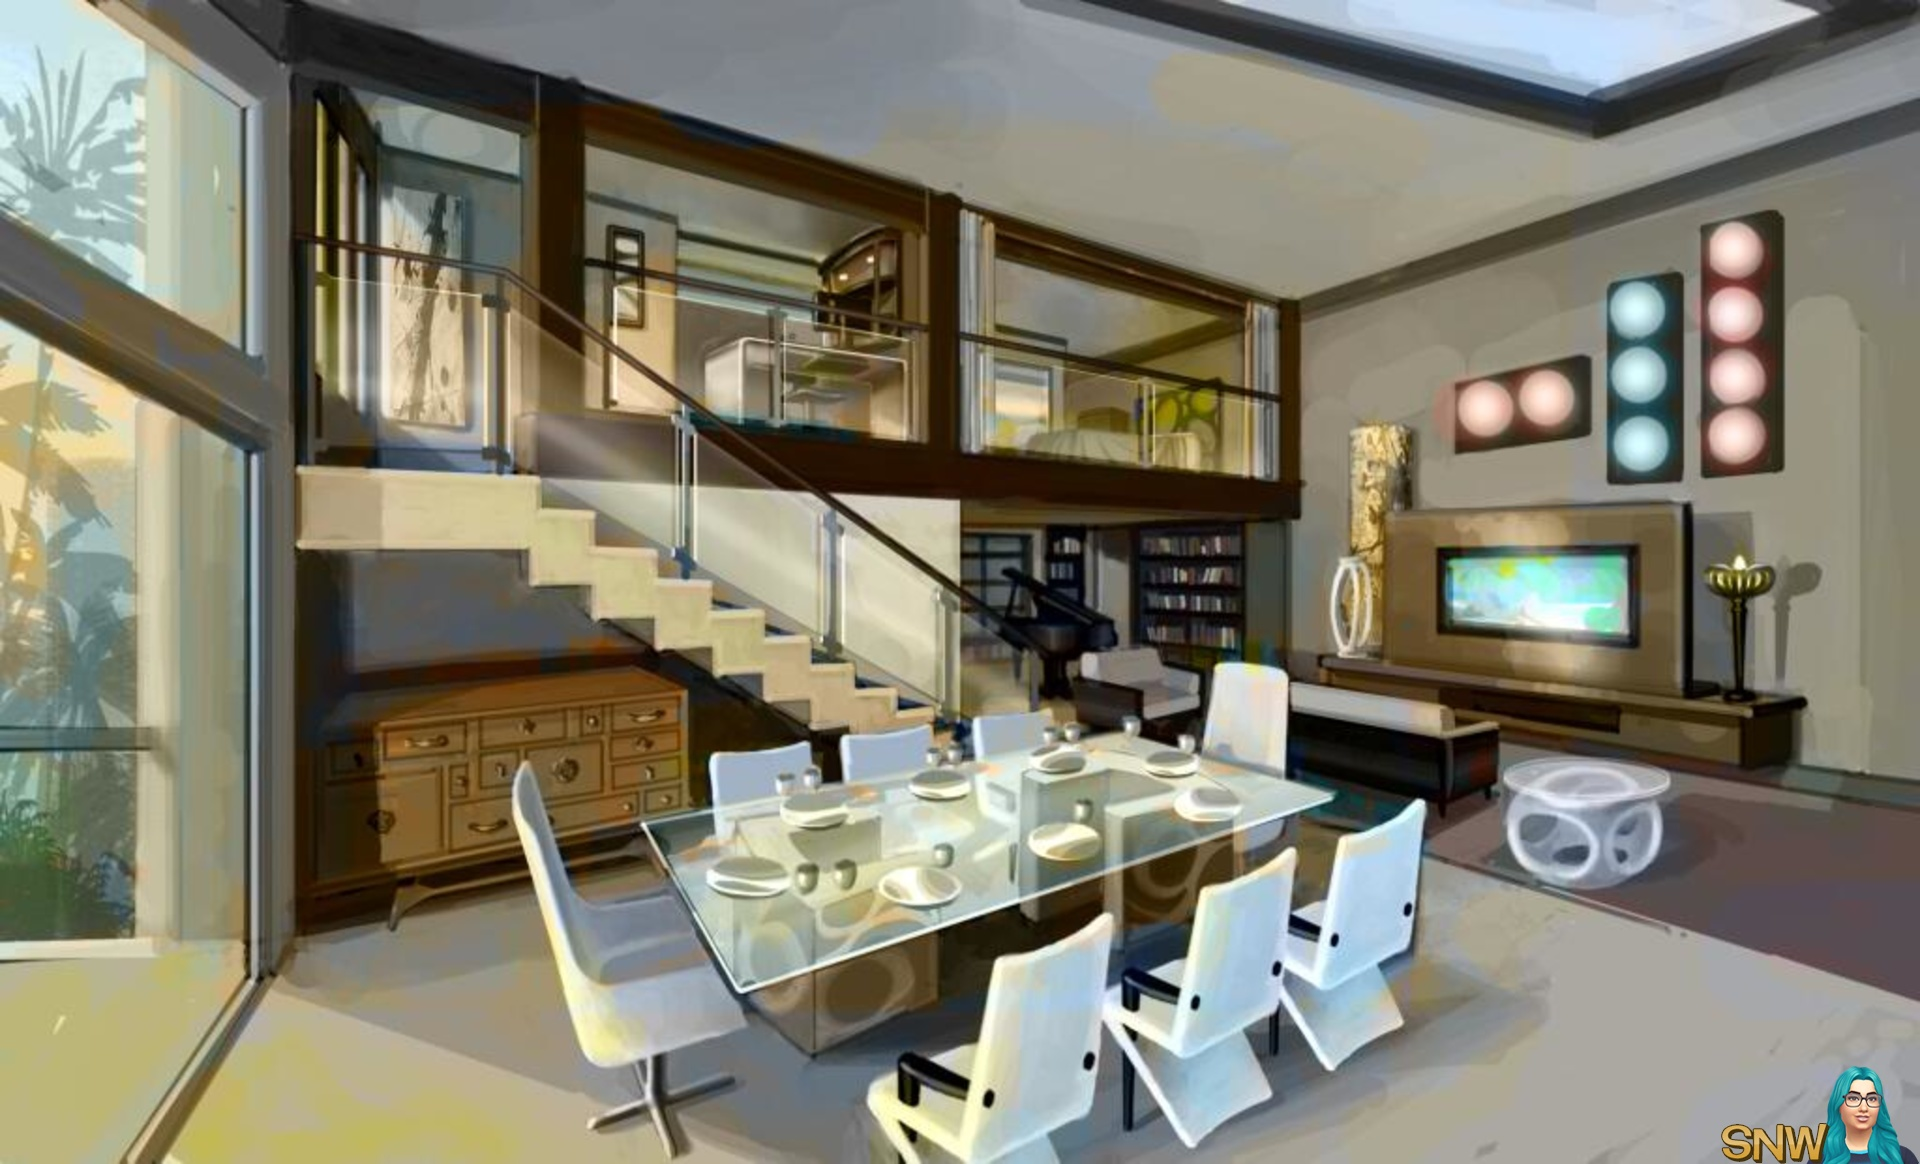 The sims 3 late night news snw for Sim interior designs